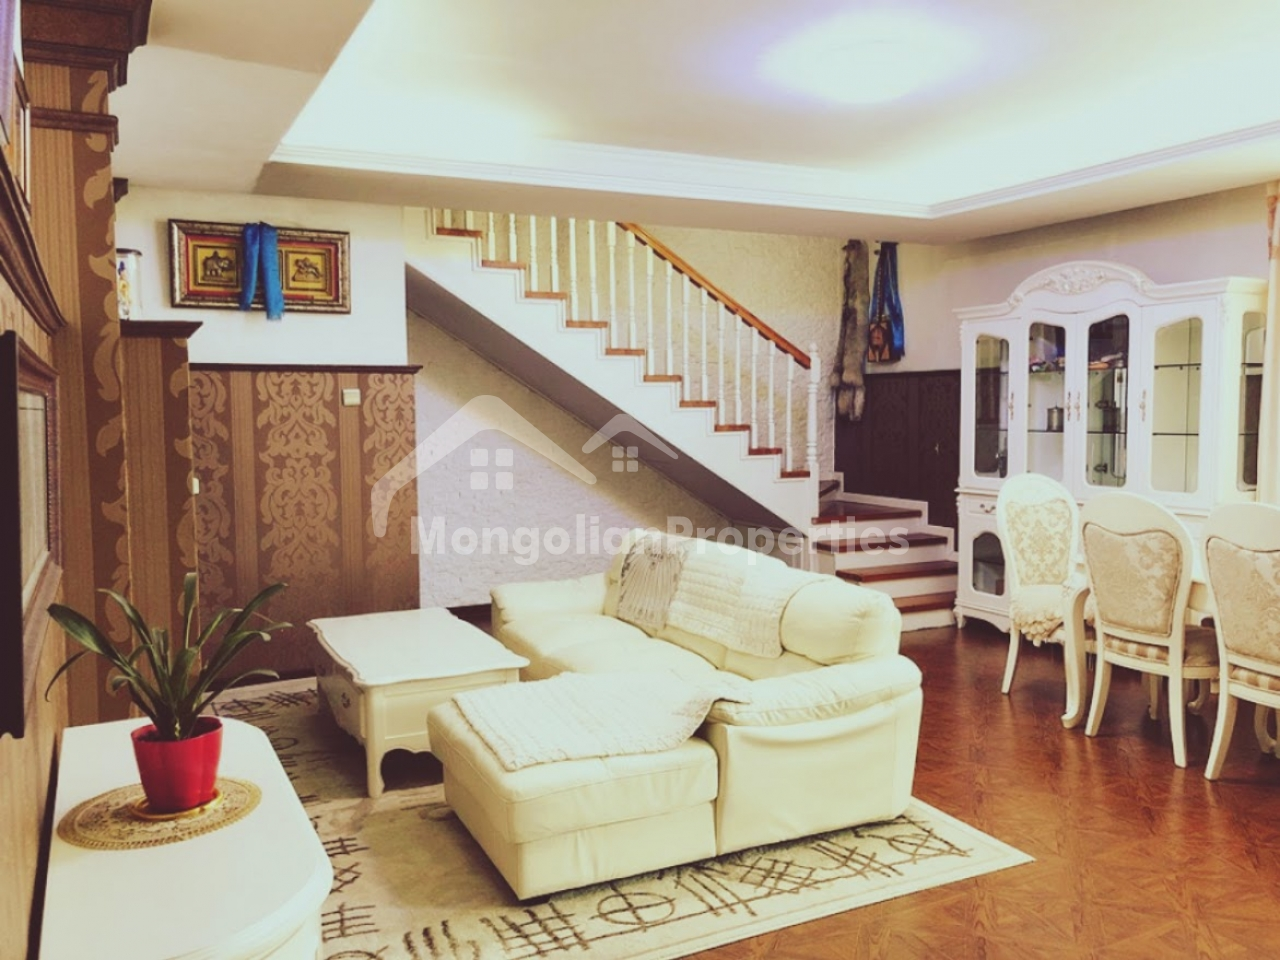 For Sale: Well-priced, 6 rooms townhouse in middle to the Chinggis Khan Hotel and Central Swimming Pool.